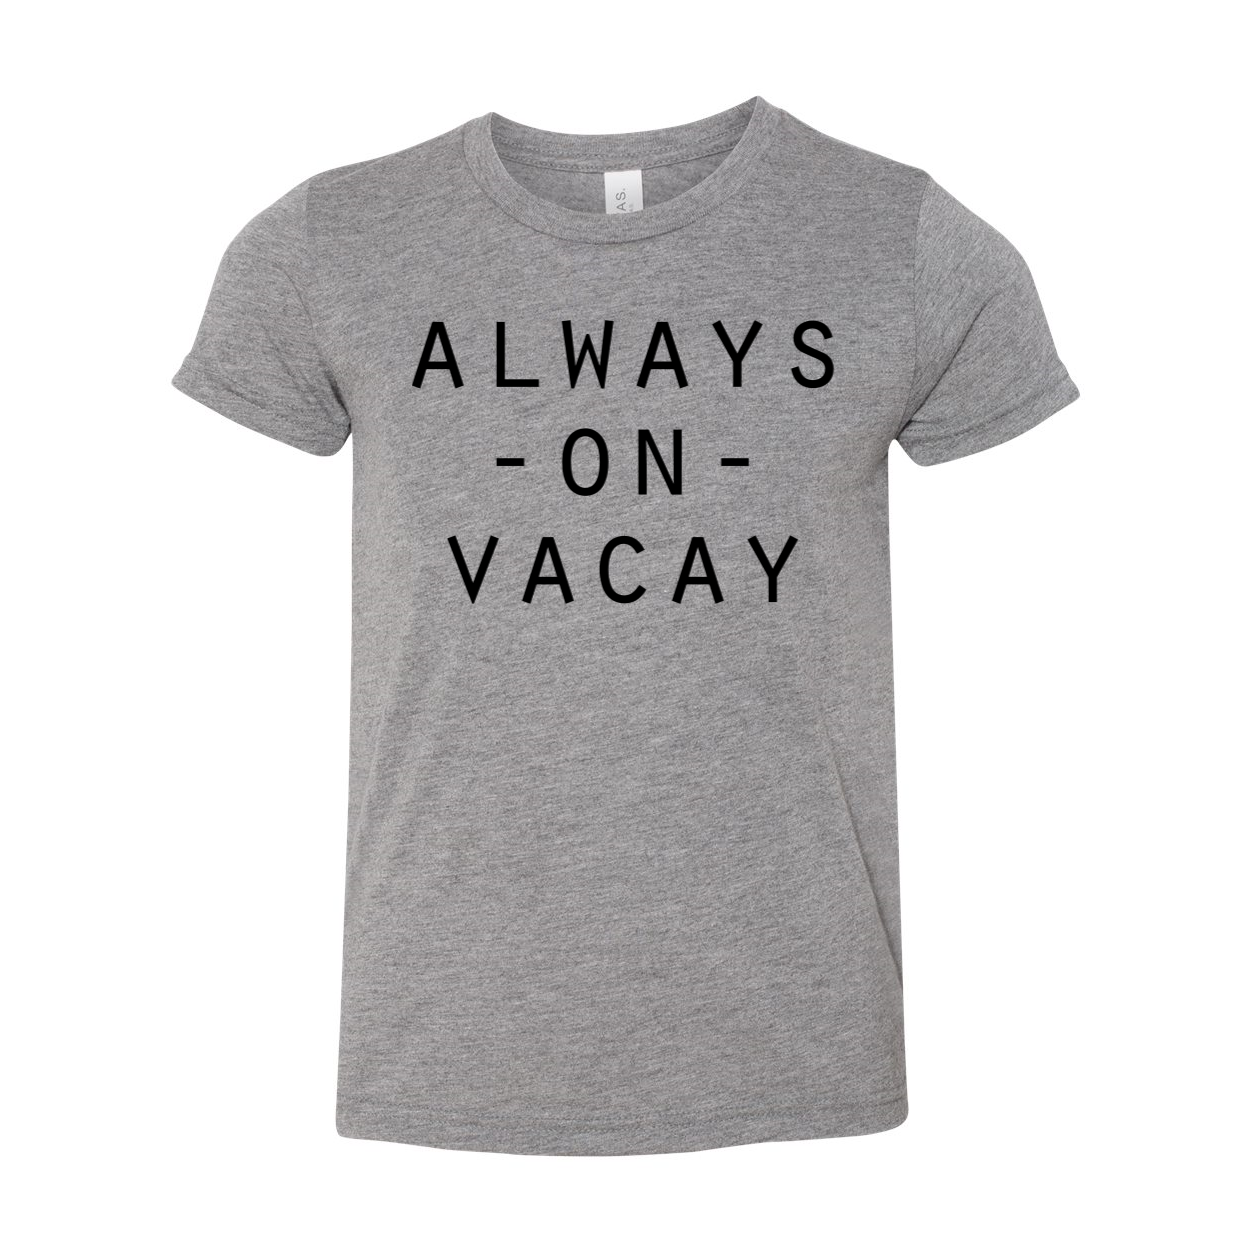 Always on Vacay Youth Tee